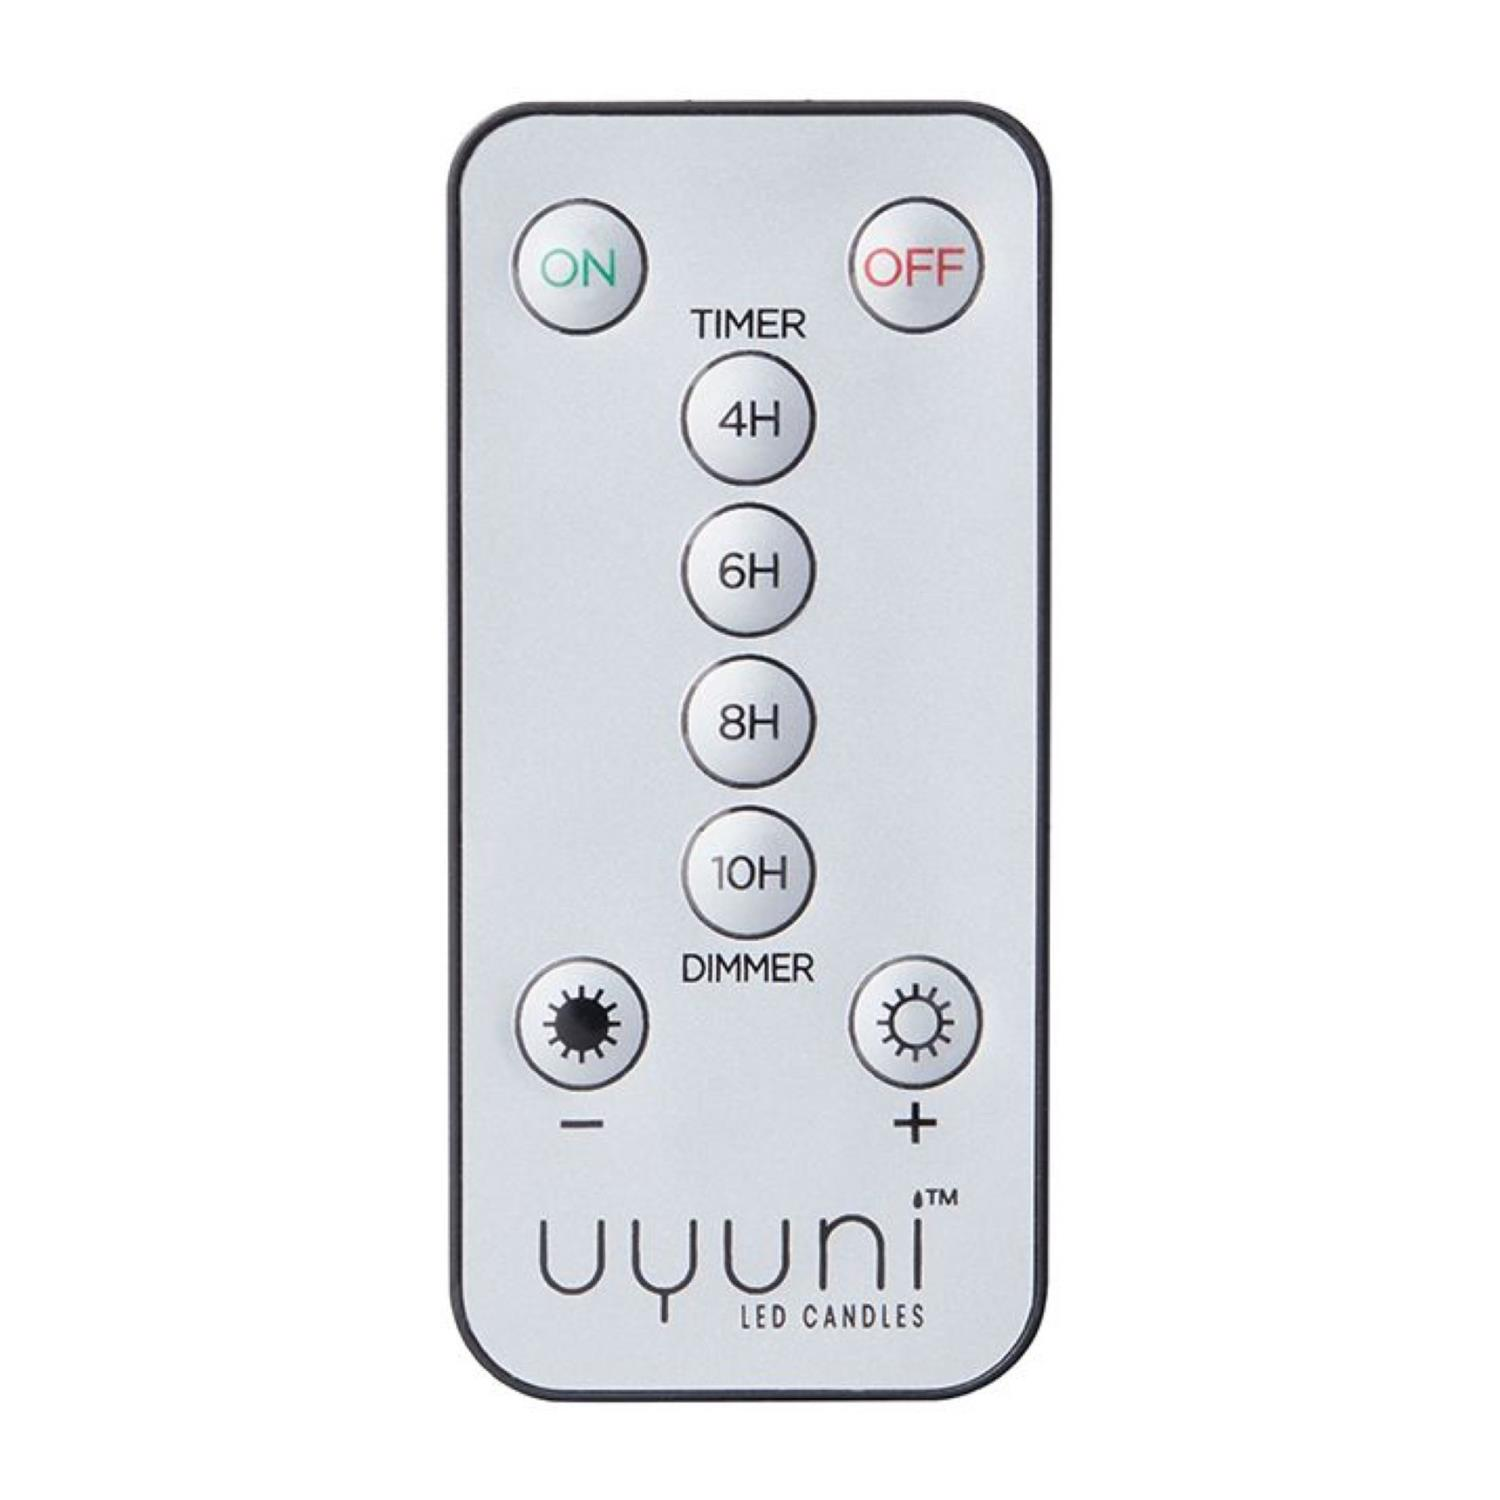 Remote control | On/Off | 3x Dimmer